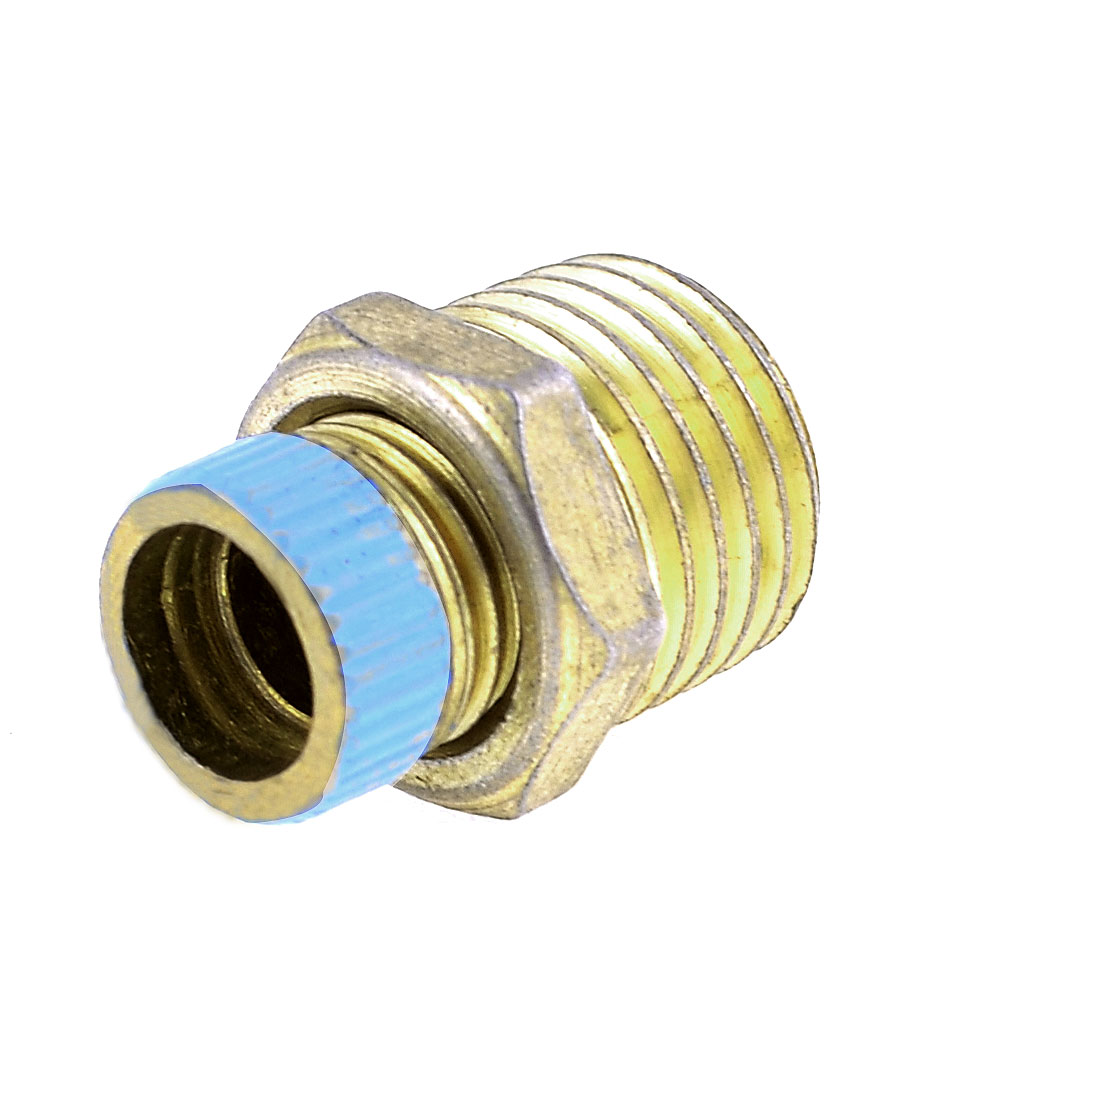 "Air Compressor 0.5"" Male Thread Water Drain Valve Brass Tone Blue"